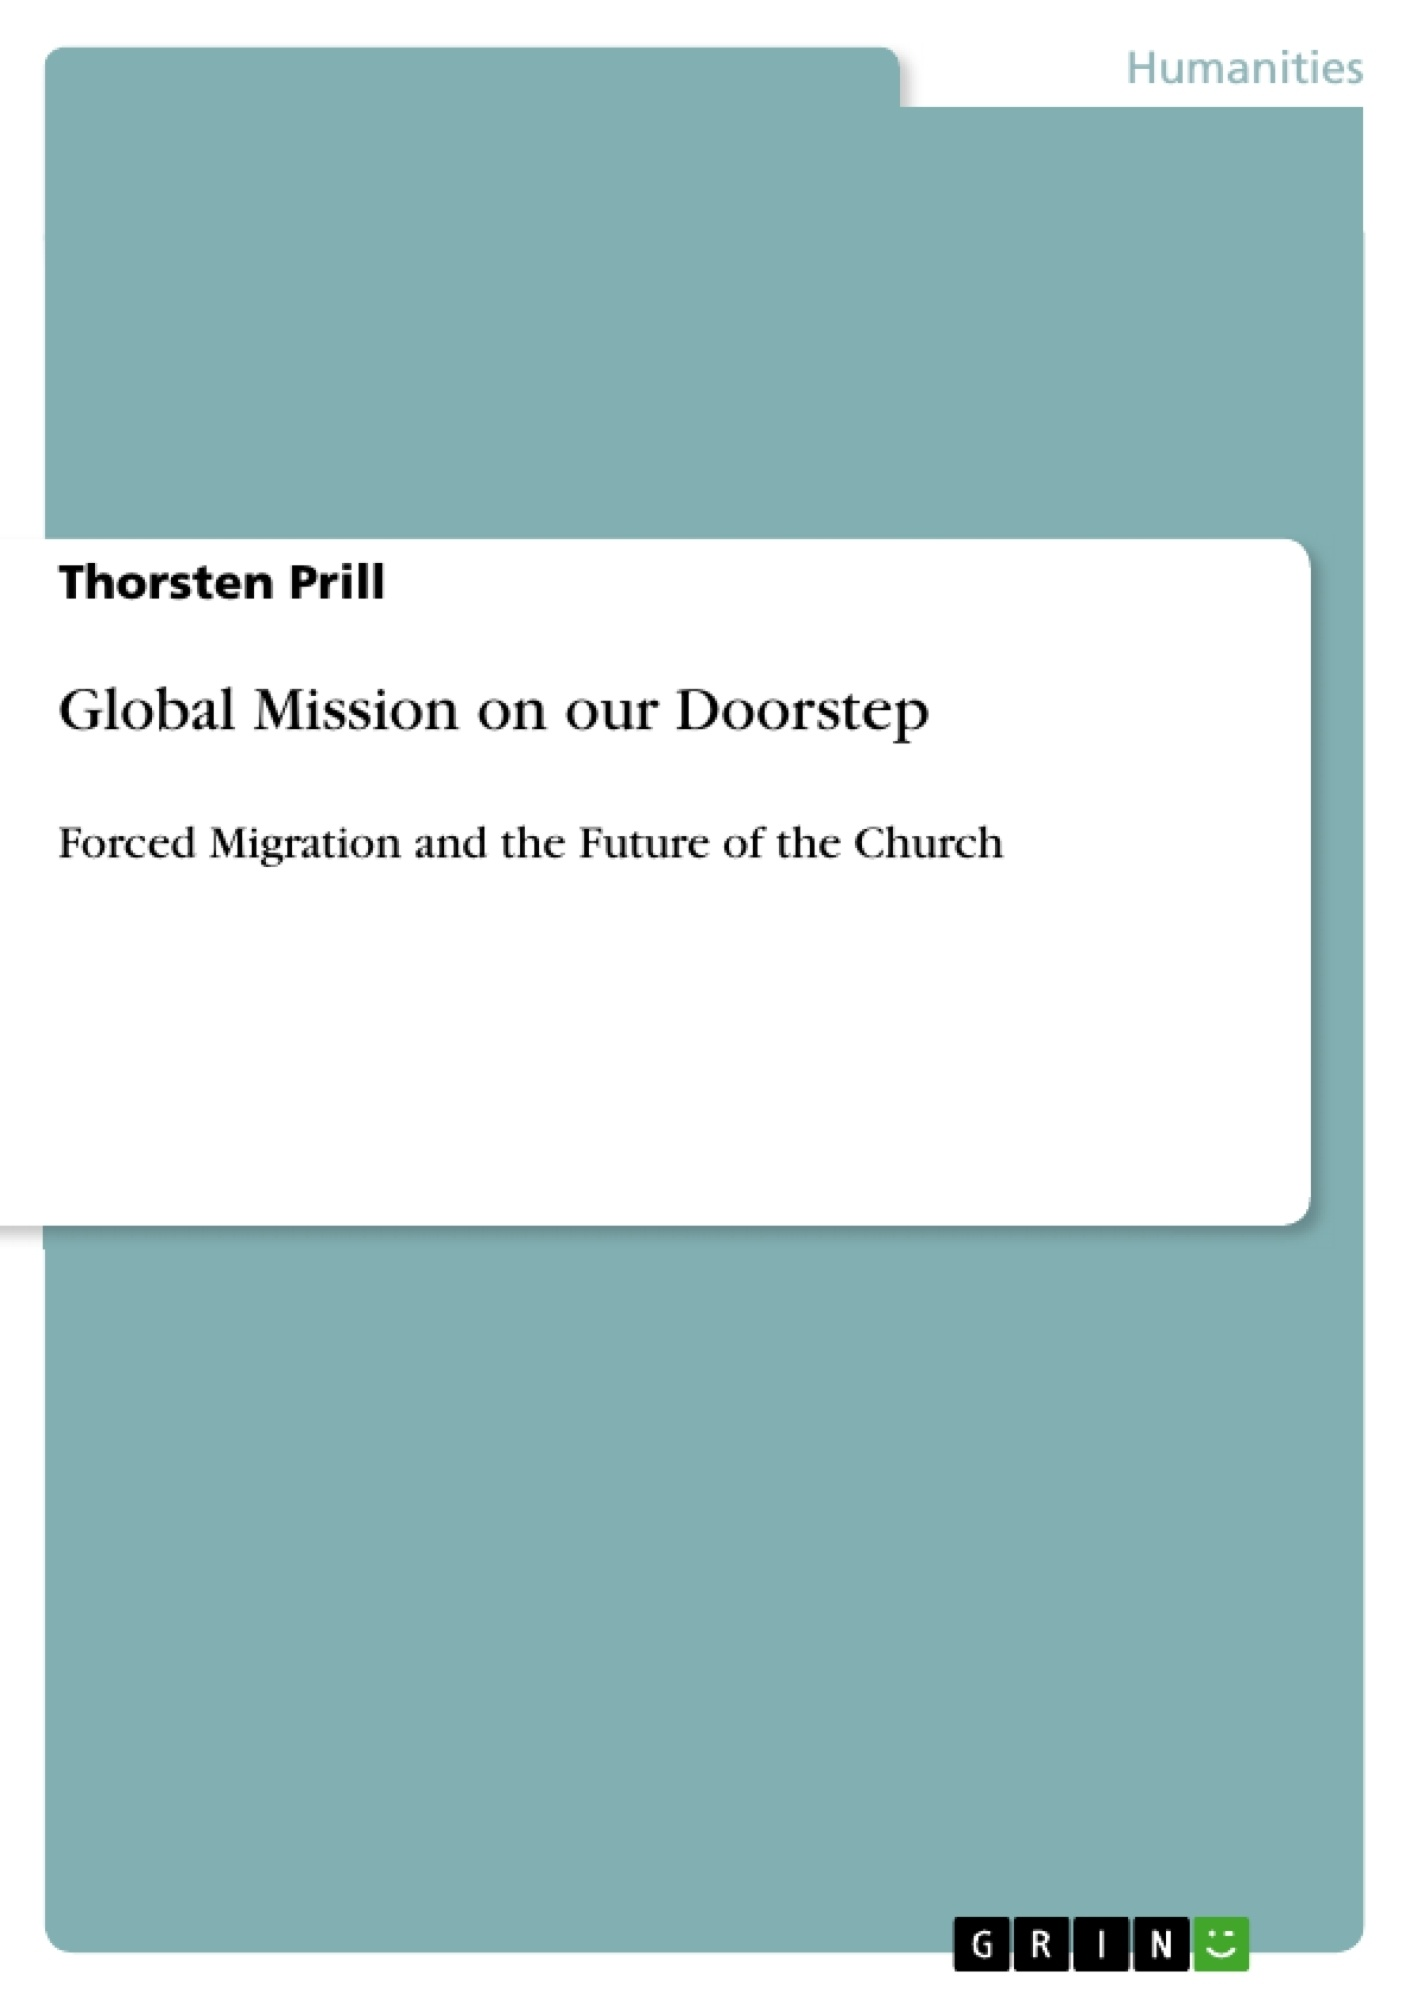 Title: Global Mission on our Doorstep